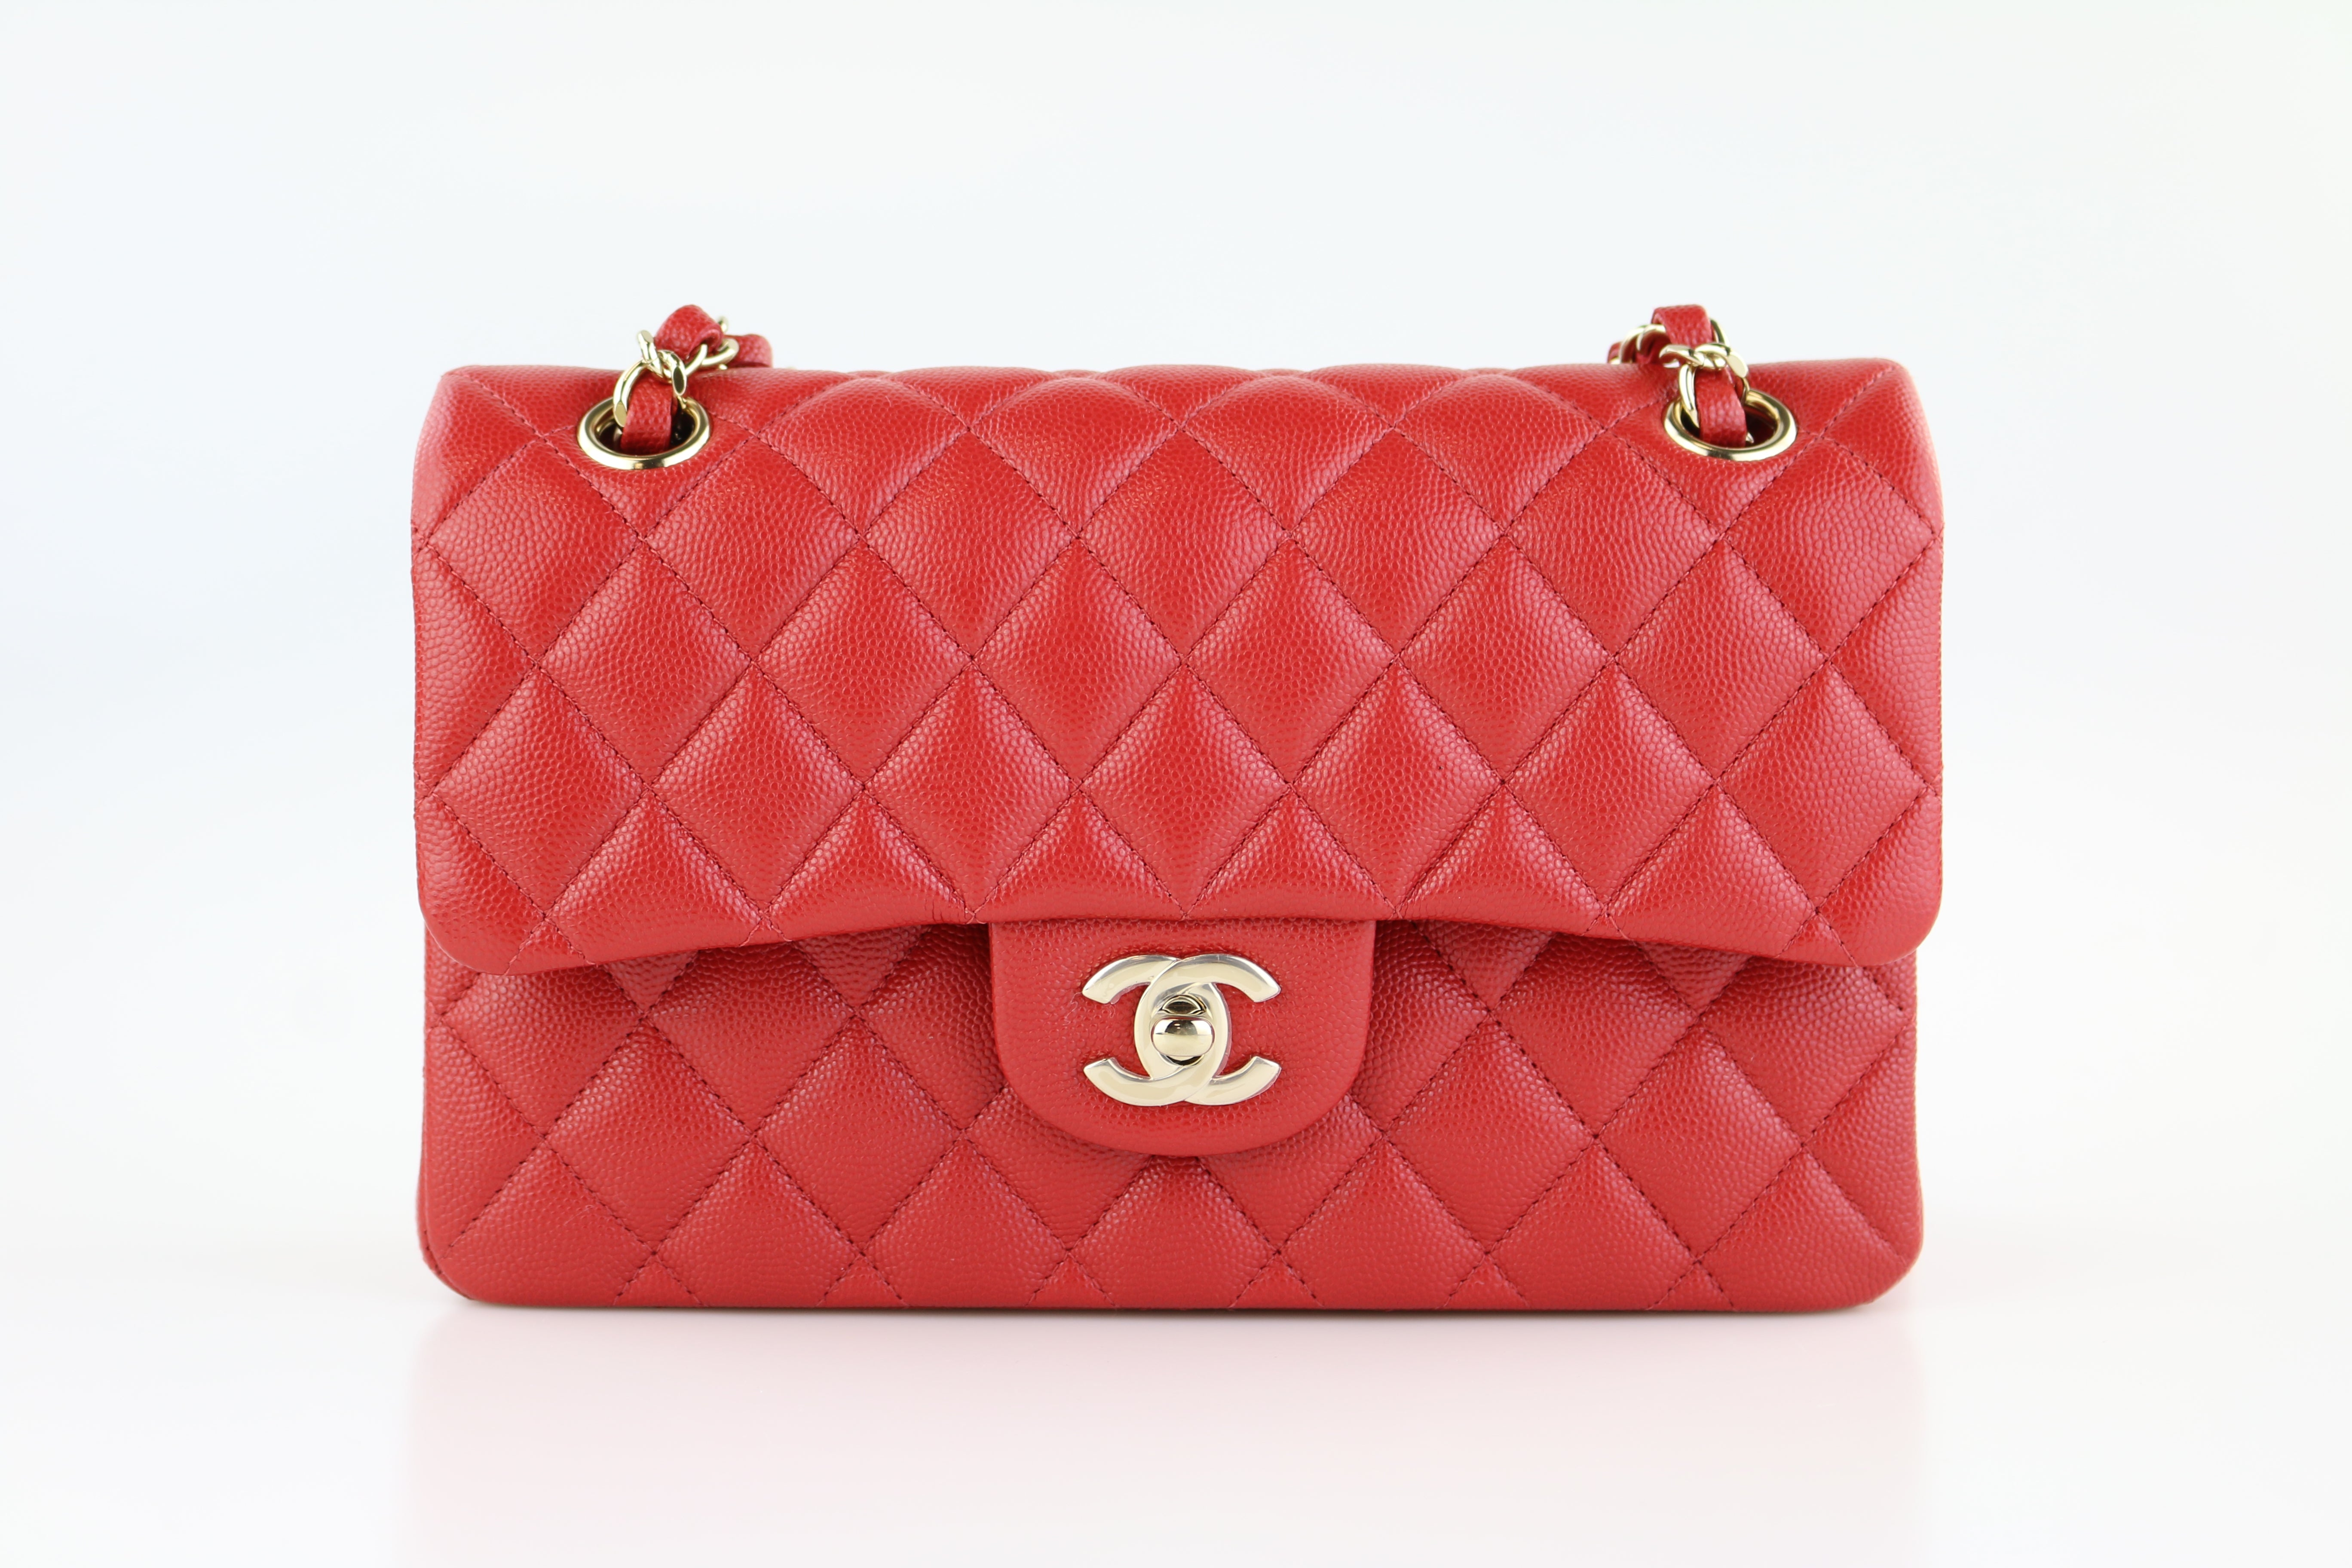 Red Caviar Small Flap